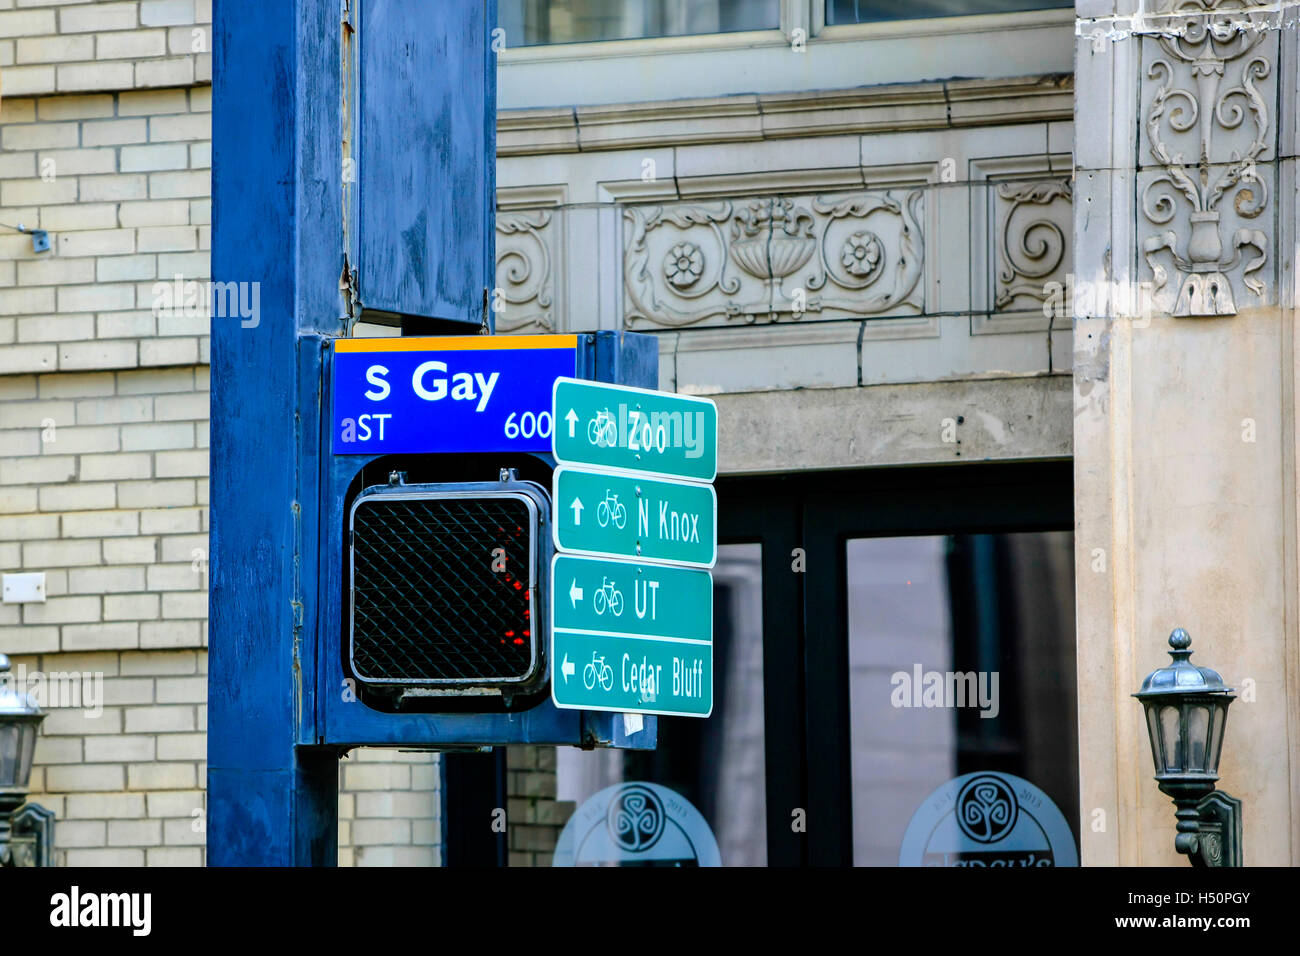 South Gay Street sign and multiple tourist attraction signs in KNoxville, TN - Stock Image